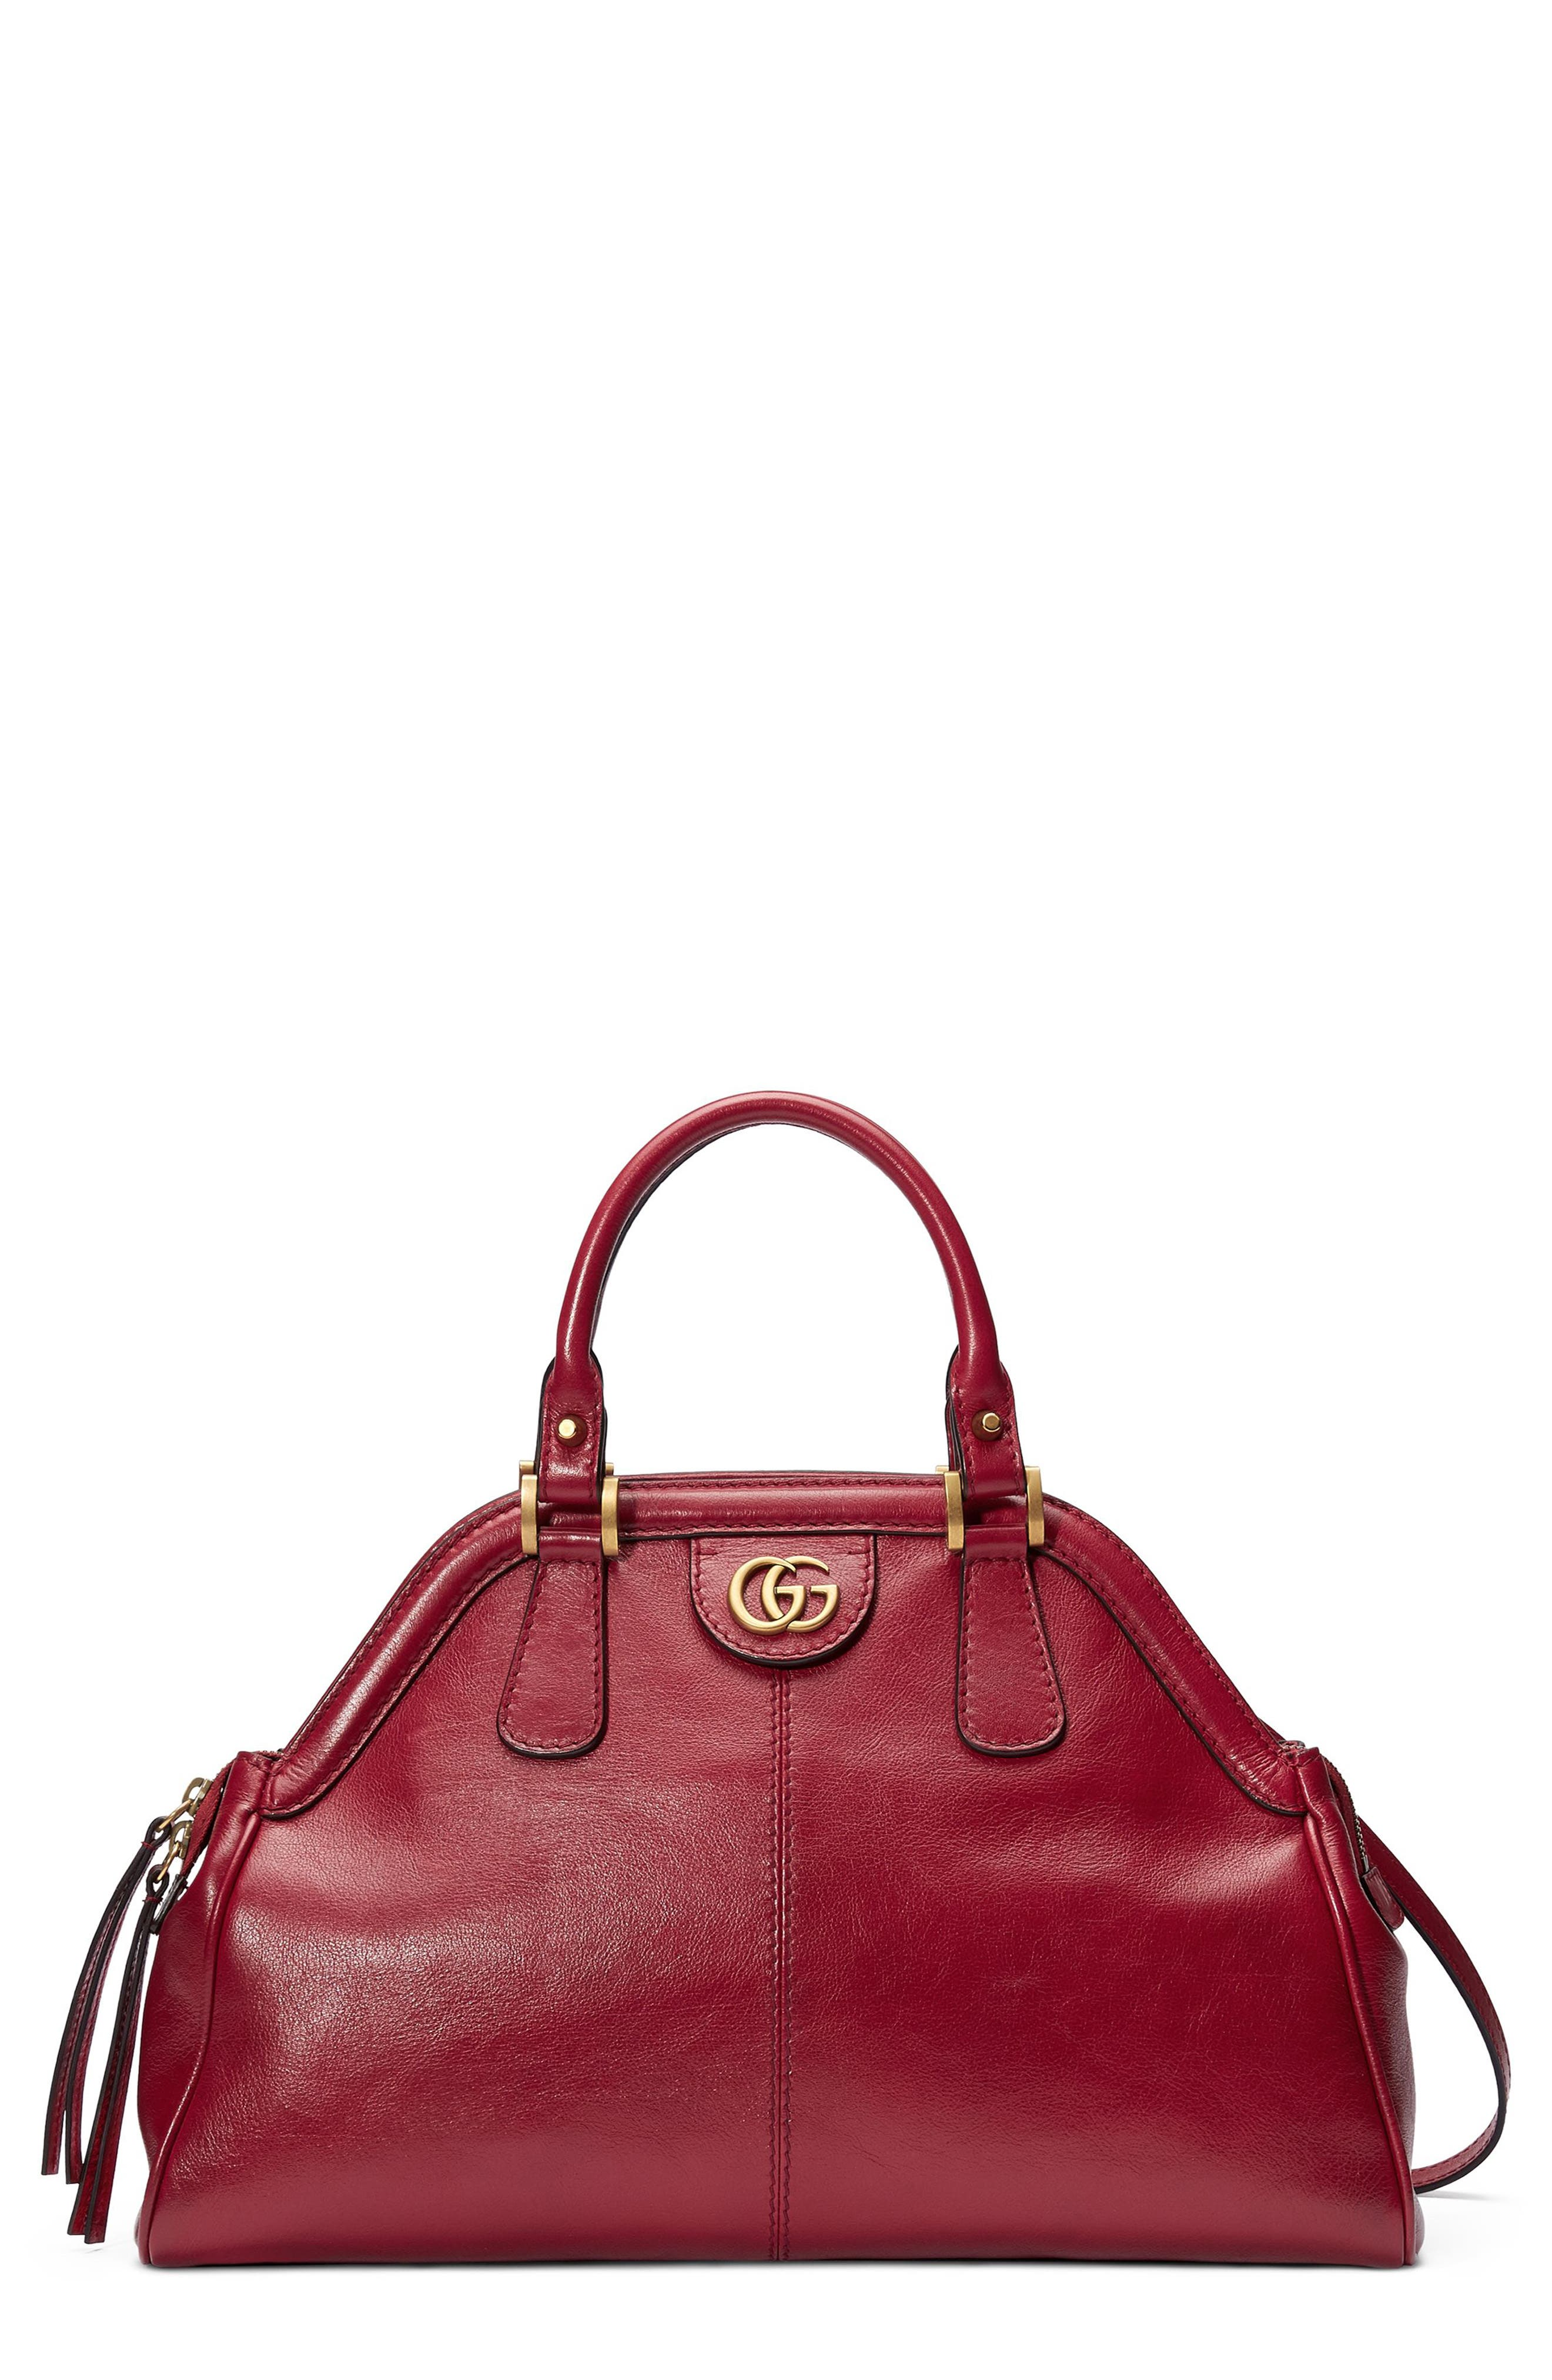 Medium RE(BELLE) Leather Satchel,                         Main,                         color, Romantic Cerise